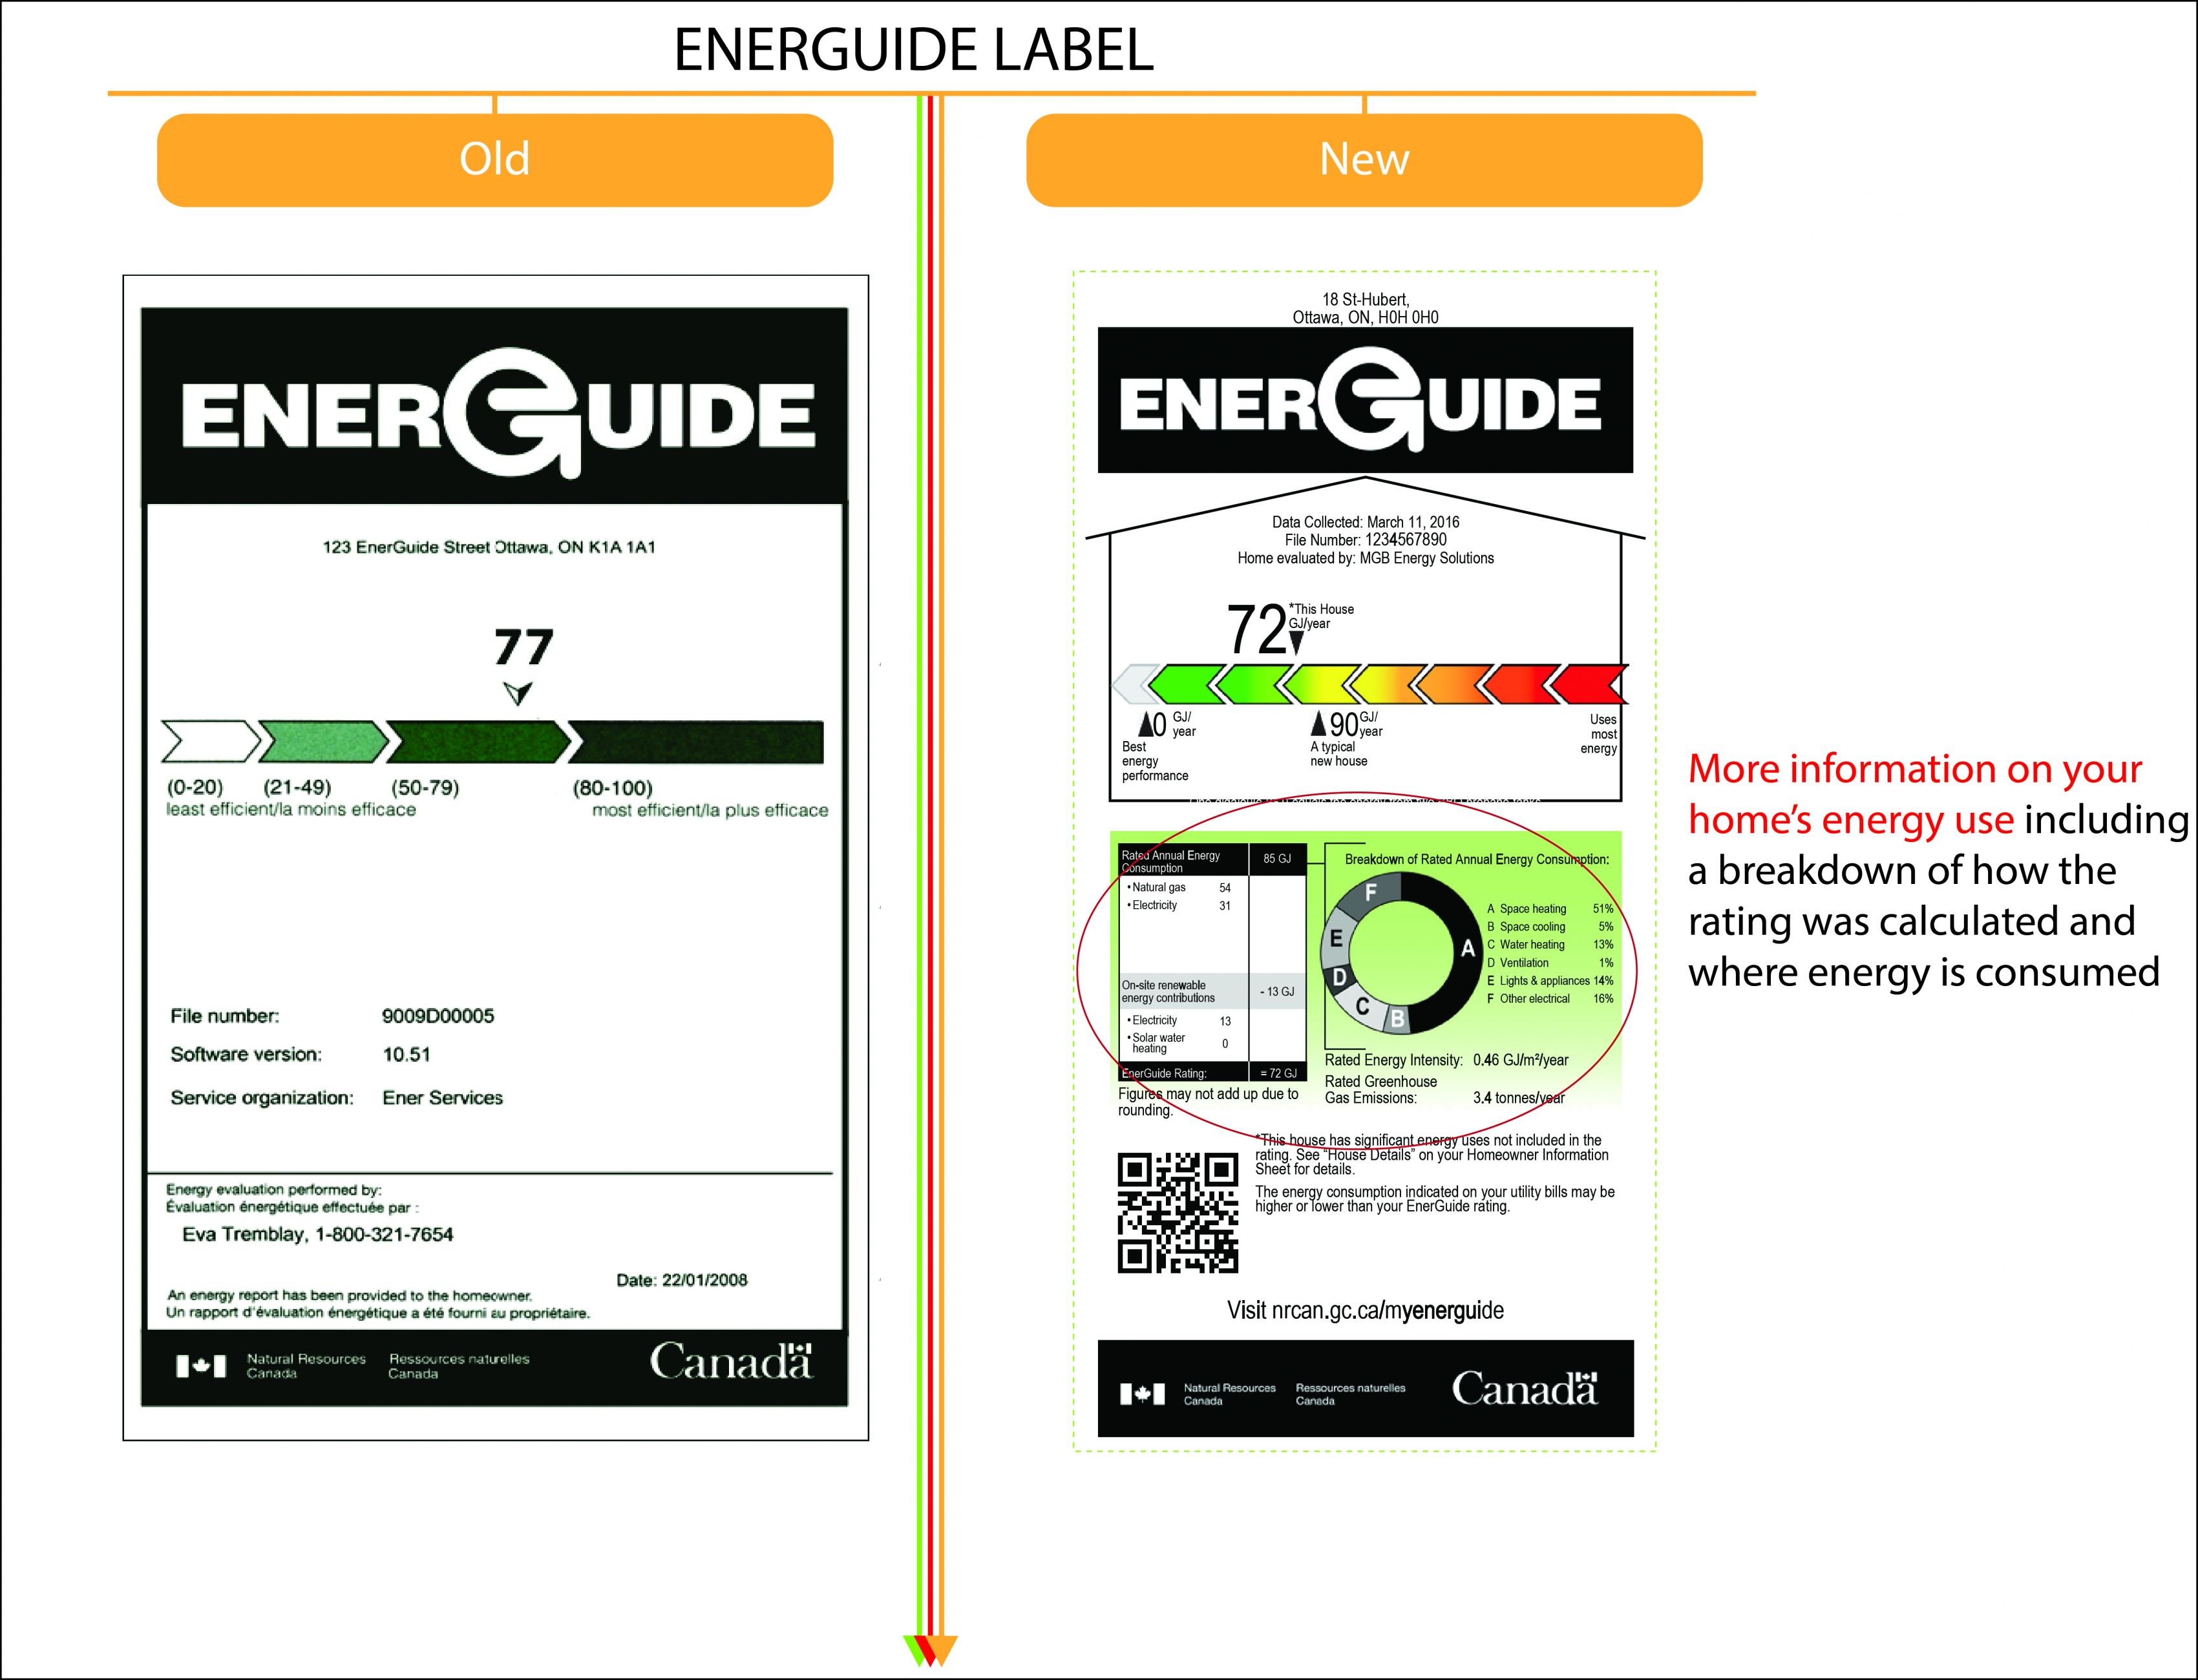 An image illustrating differences between the old and new EnerGuide label for homes